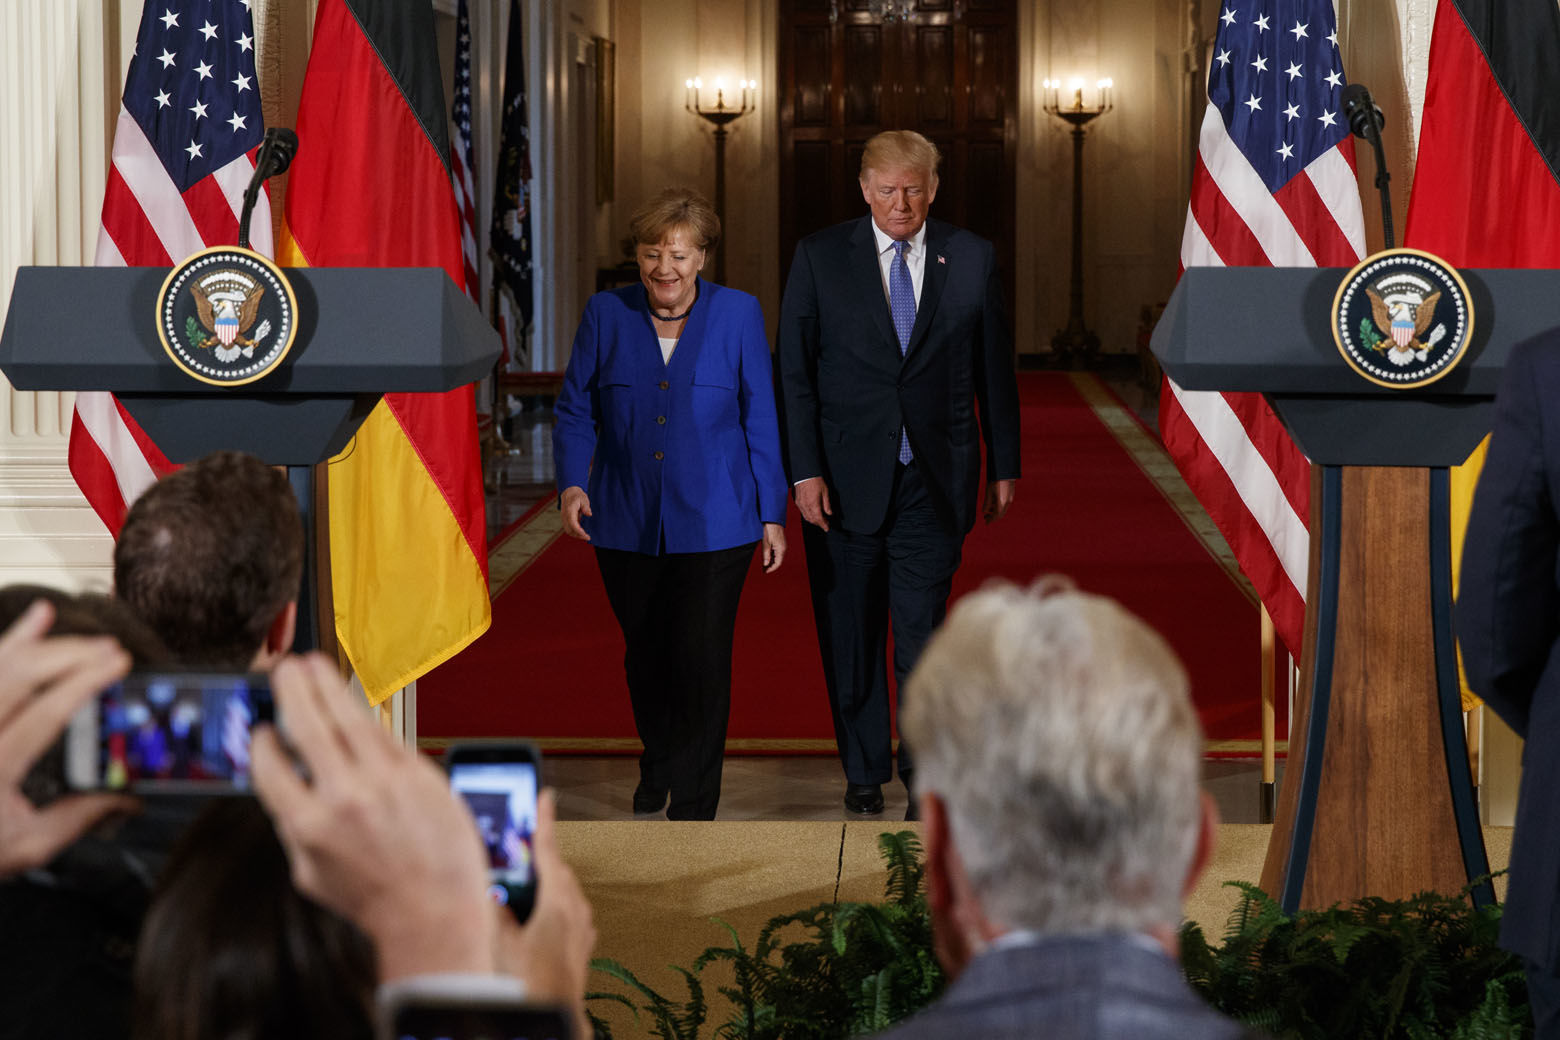 President Donald Trump and German Chancellor Angela Merkel arrive for a news conference in the East Room of the White House, Friday, April 27, 2018, in Washington. (AP Photo/Evan Vucci)